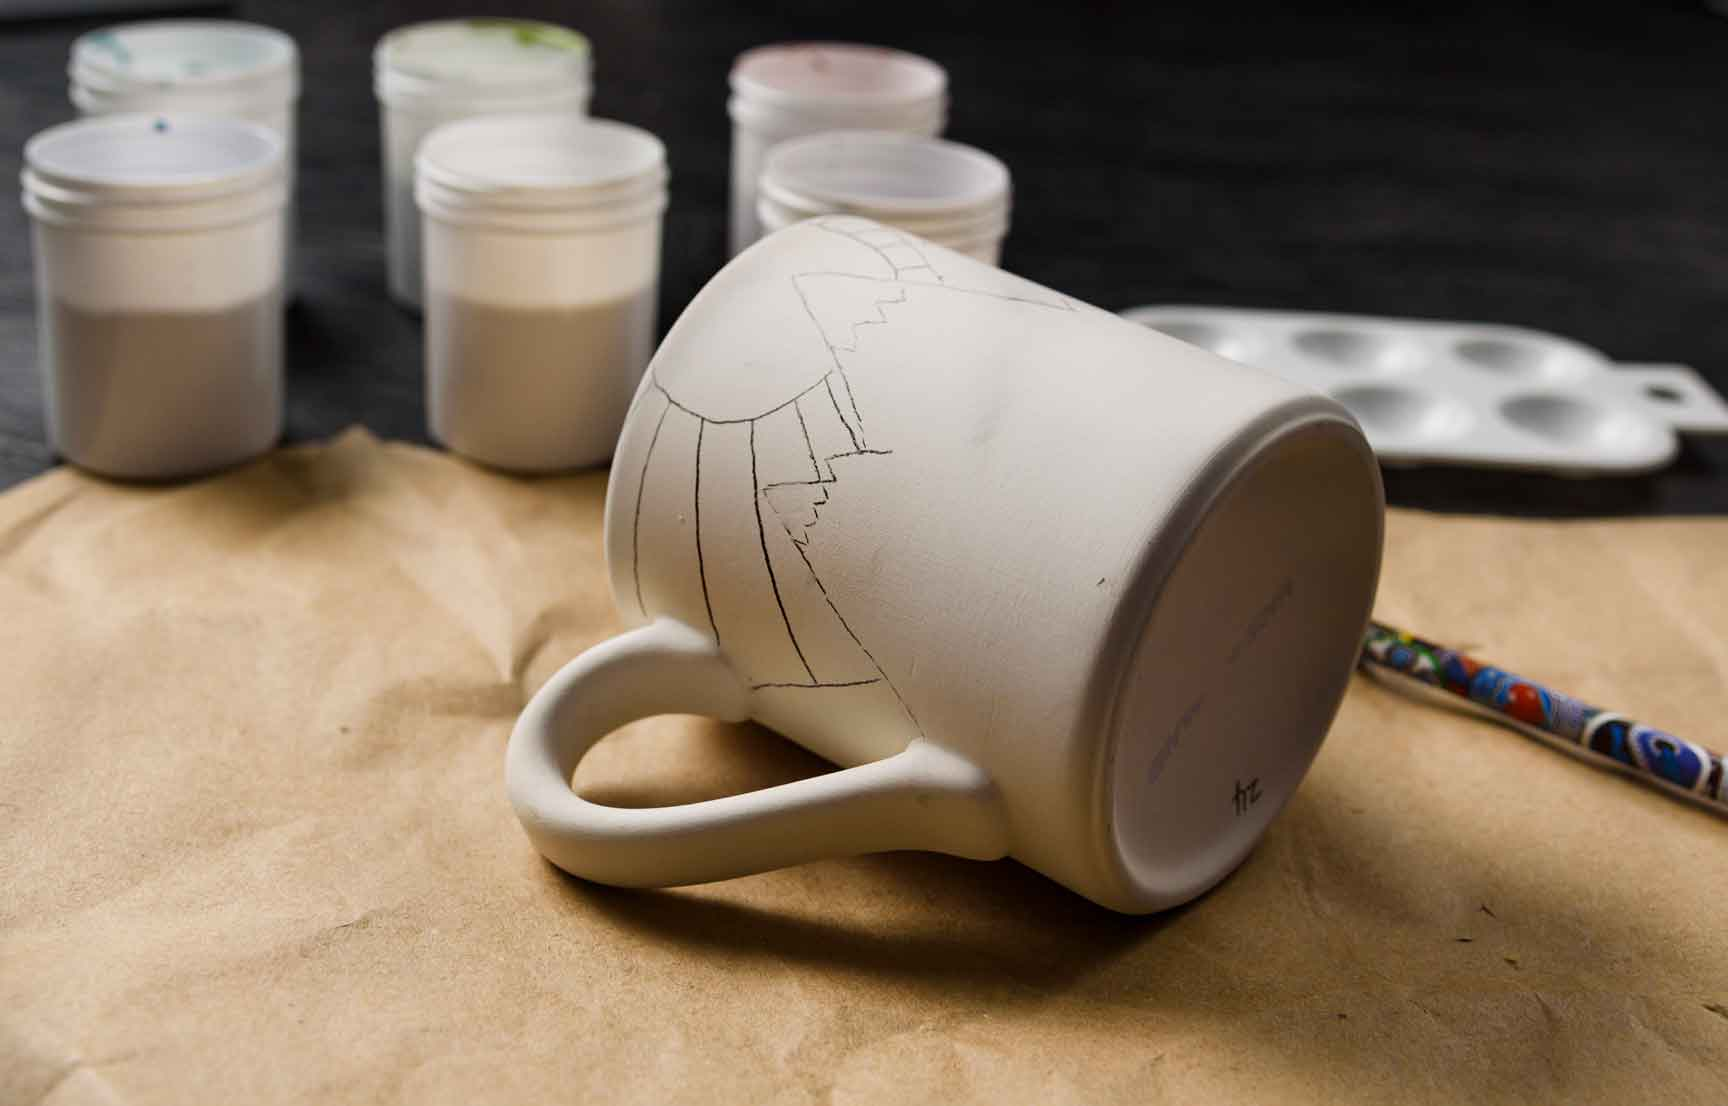 Drawing the design on the mug from Crock A Doodle in Canmore